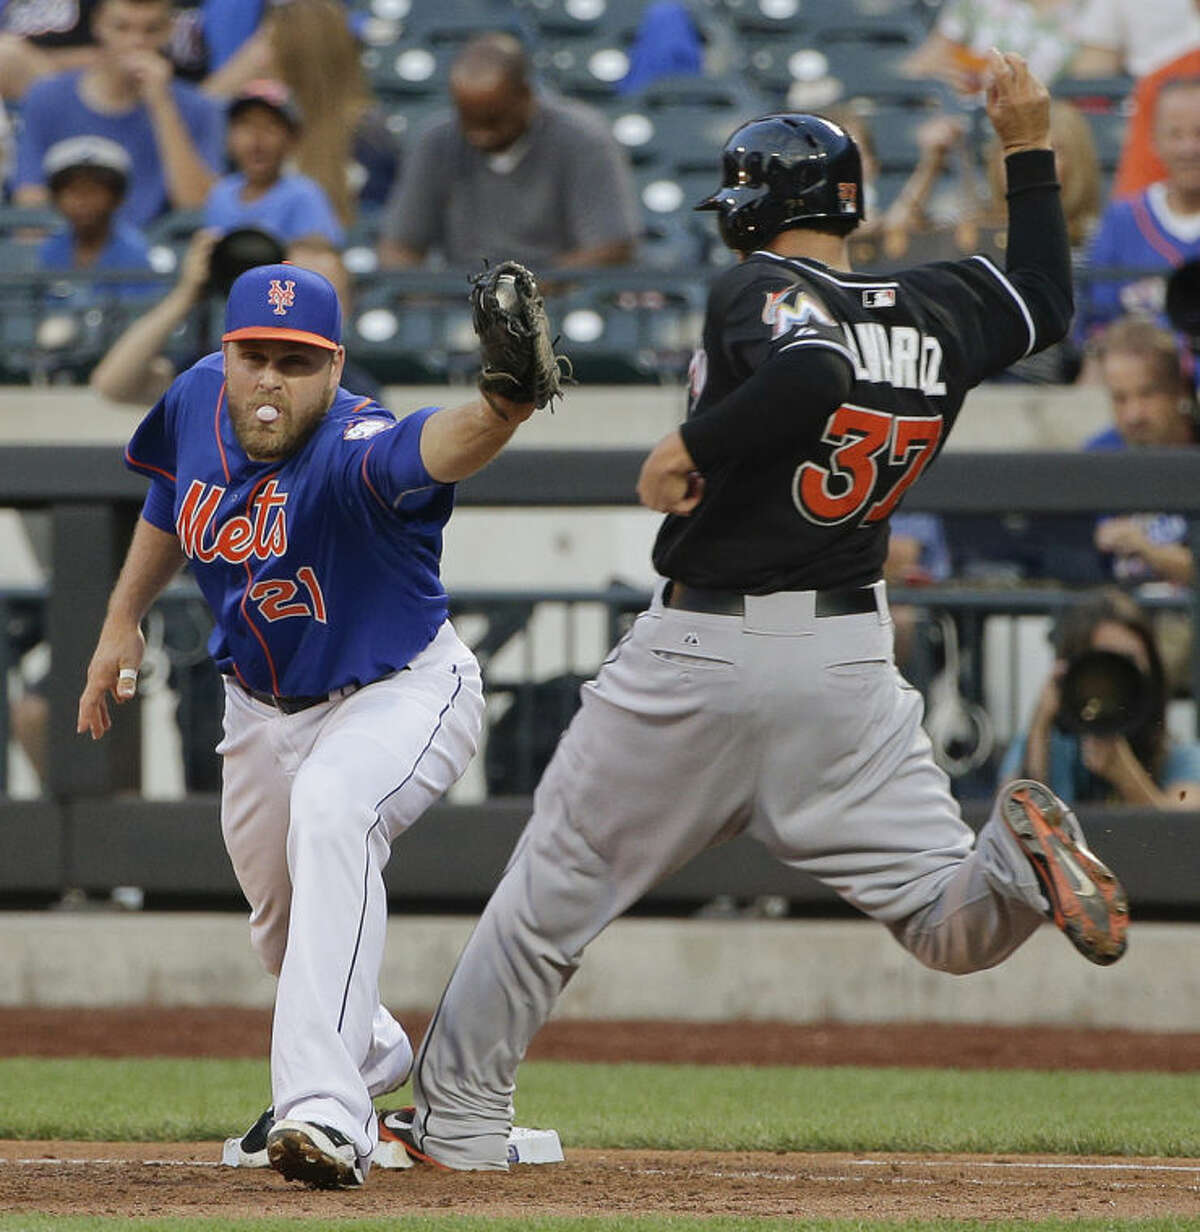 New York Mets first baseman Lucas Duda (21) takes the throw to the bag ahead of Miami Marlins' Henderson Alvarez (37) for an out in the third inning of a baseball game, Friday, July 11, 2014, in New York. (AP Photo/Julie Jacobson)